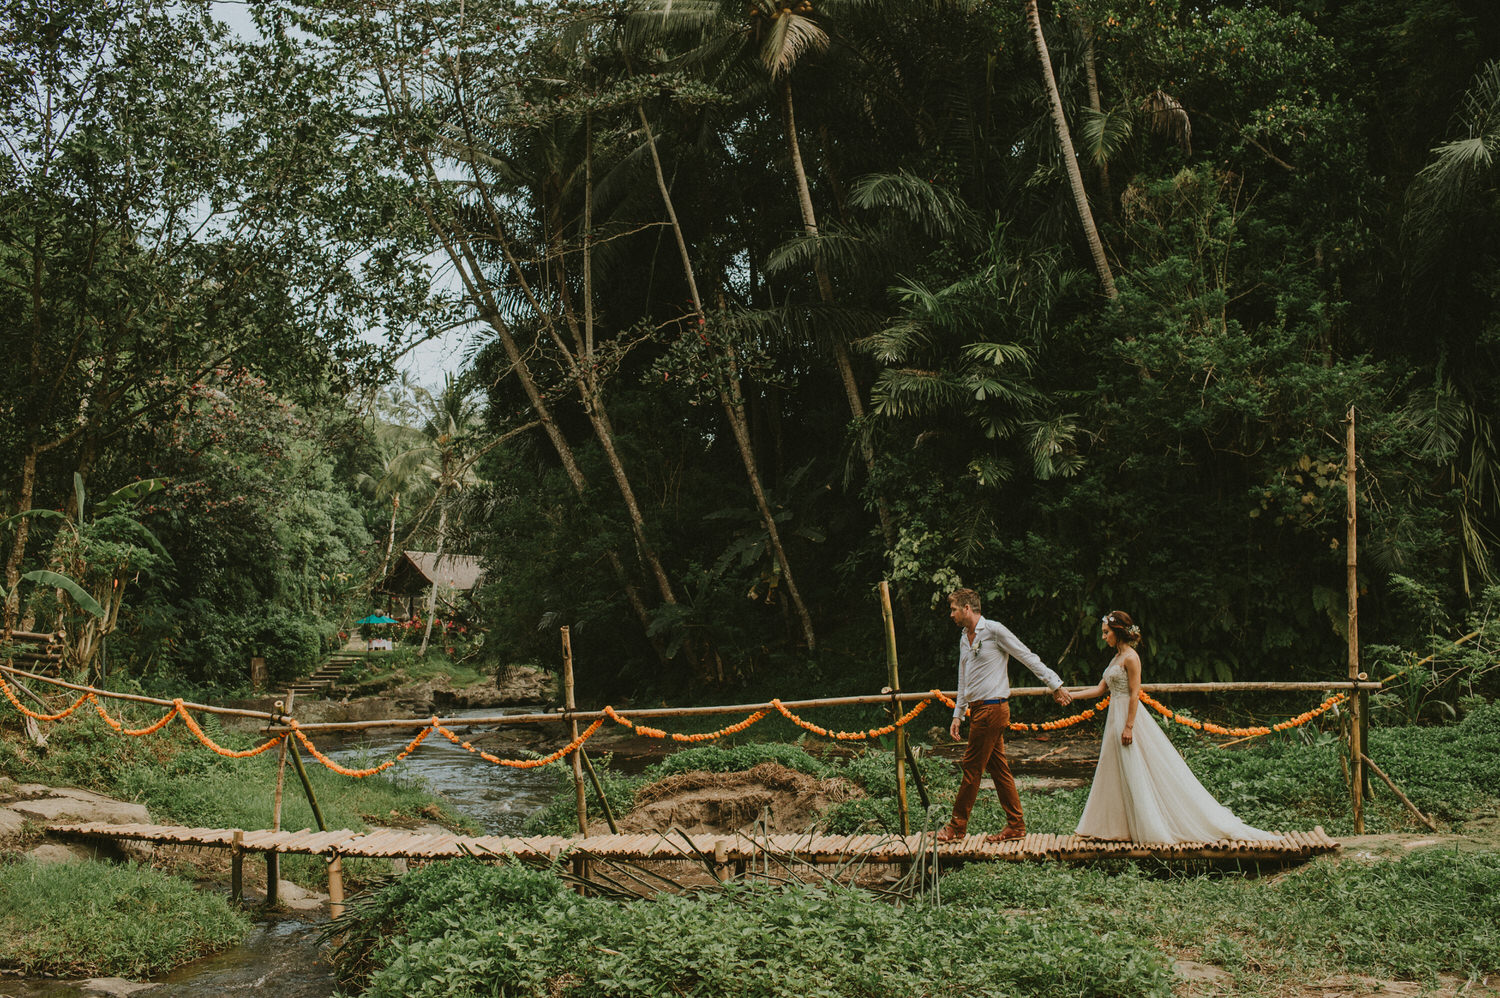 bali-wedding-ubud-wedding-wedding-destination-diktatphotography-kadek-artayasa-elaine-and-glenn-093